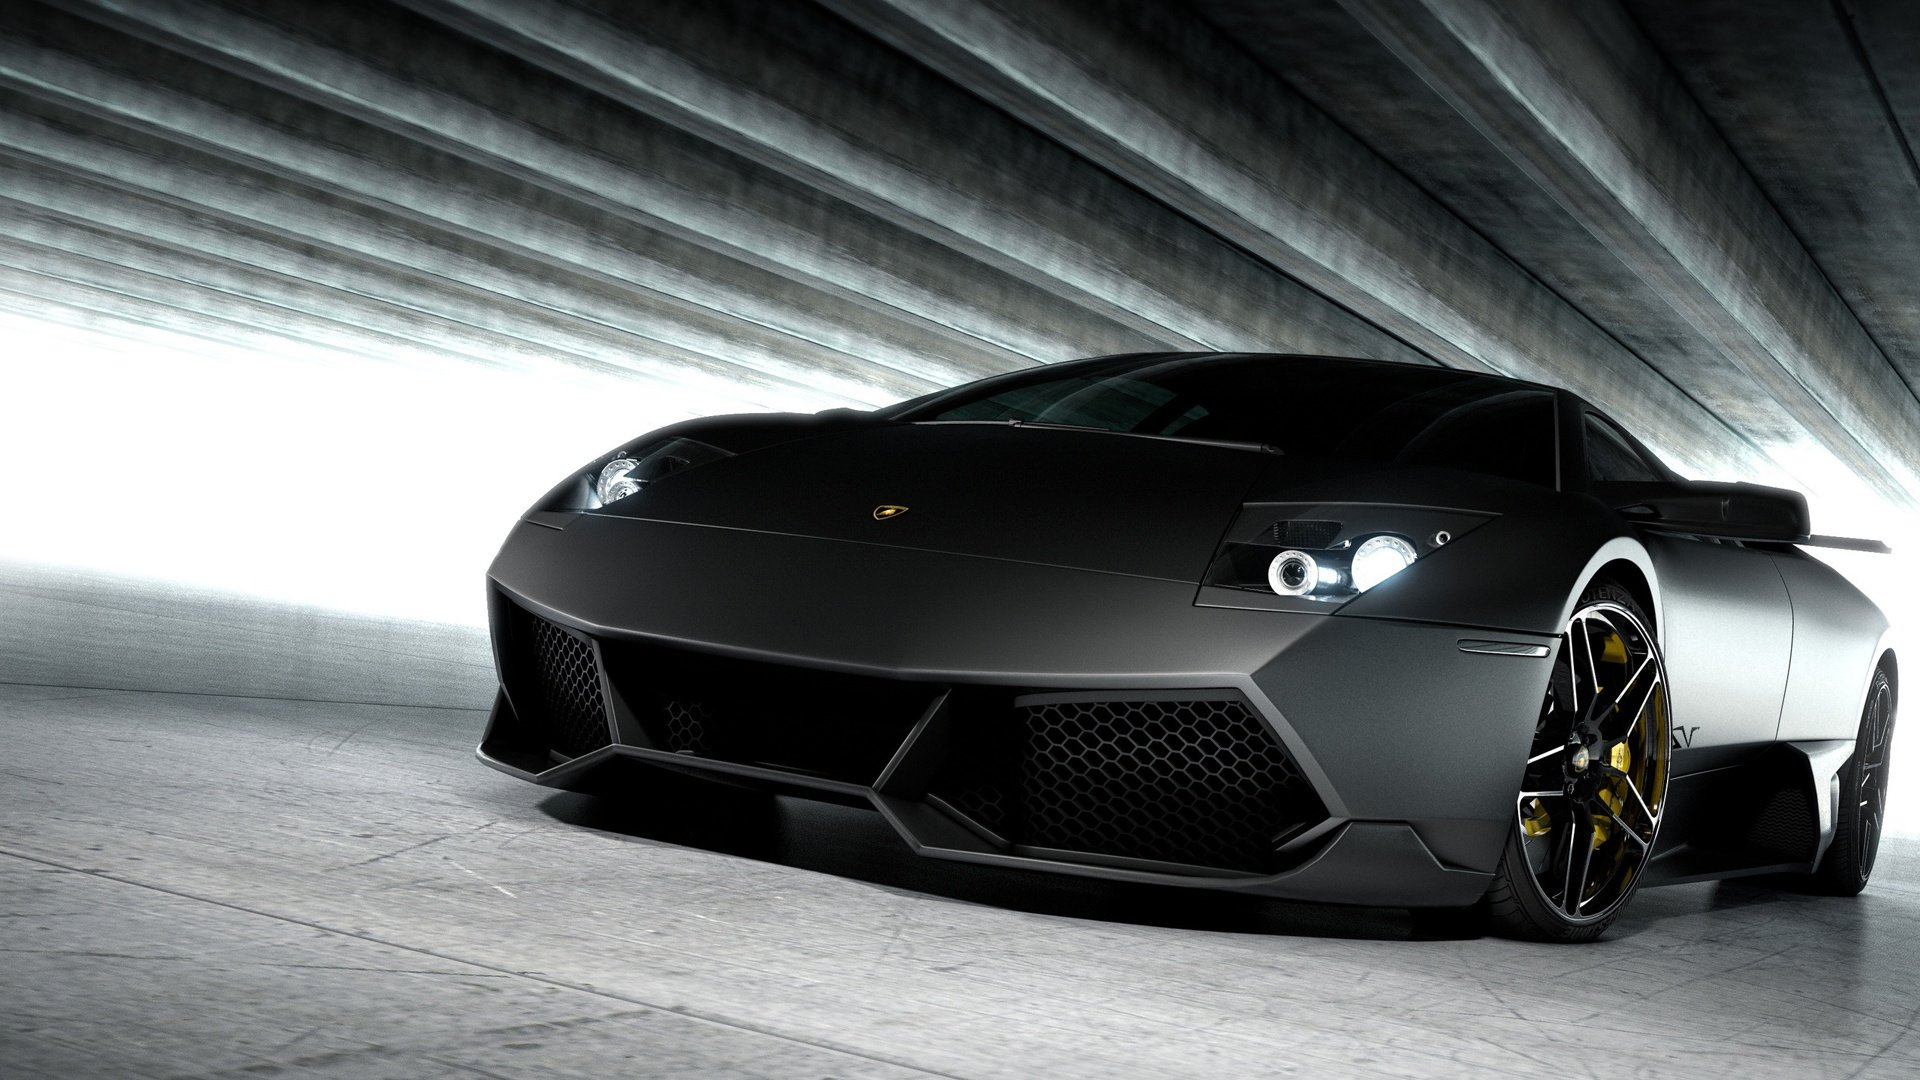 Lamborghini wallpaper 4 1920x1080